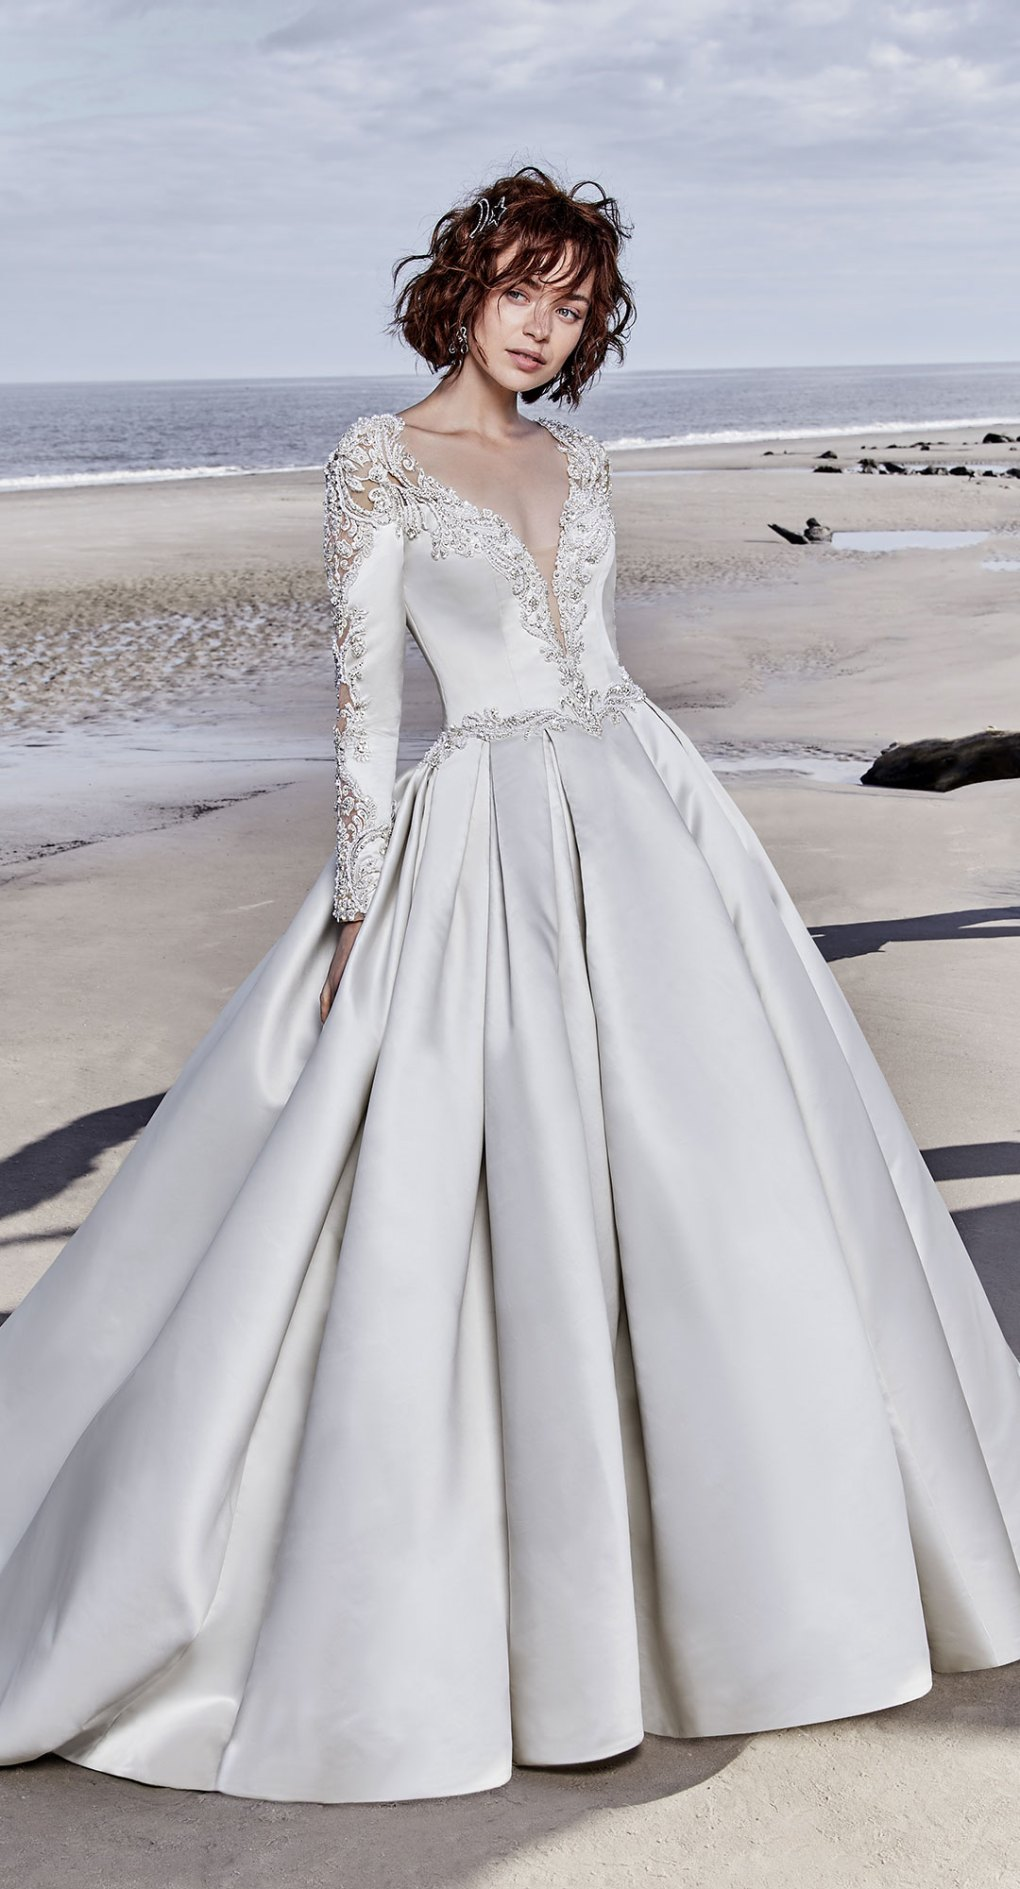 sottero midgley plunging vneck long sleeve ball gown wedding dress (brennon) mv romantic princess